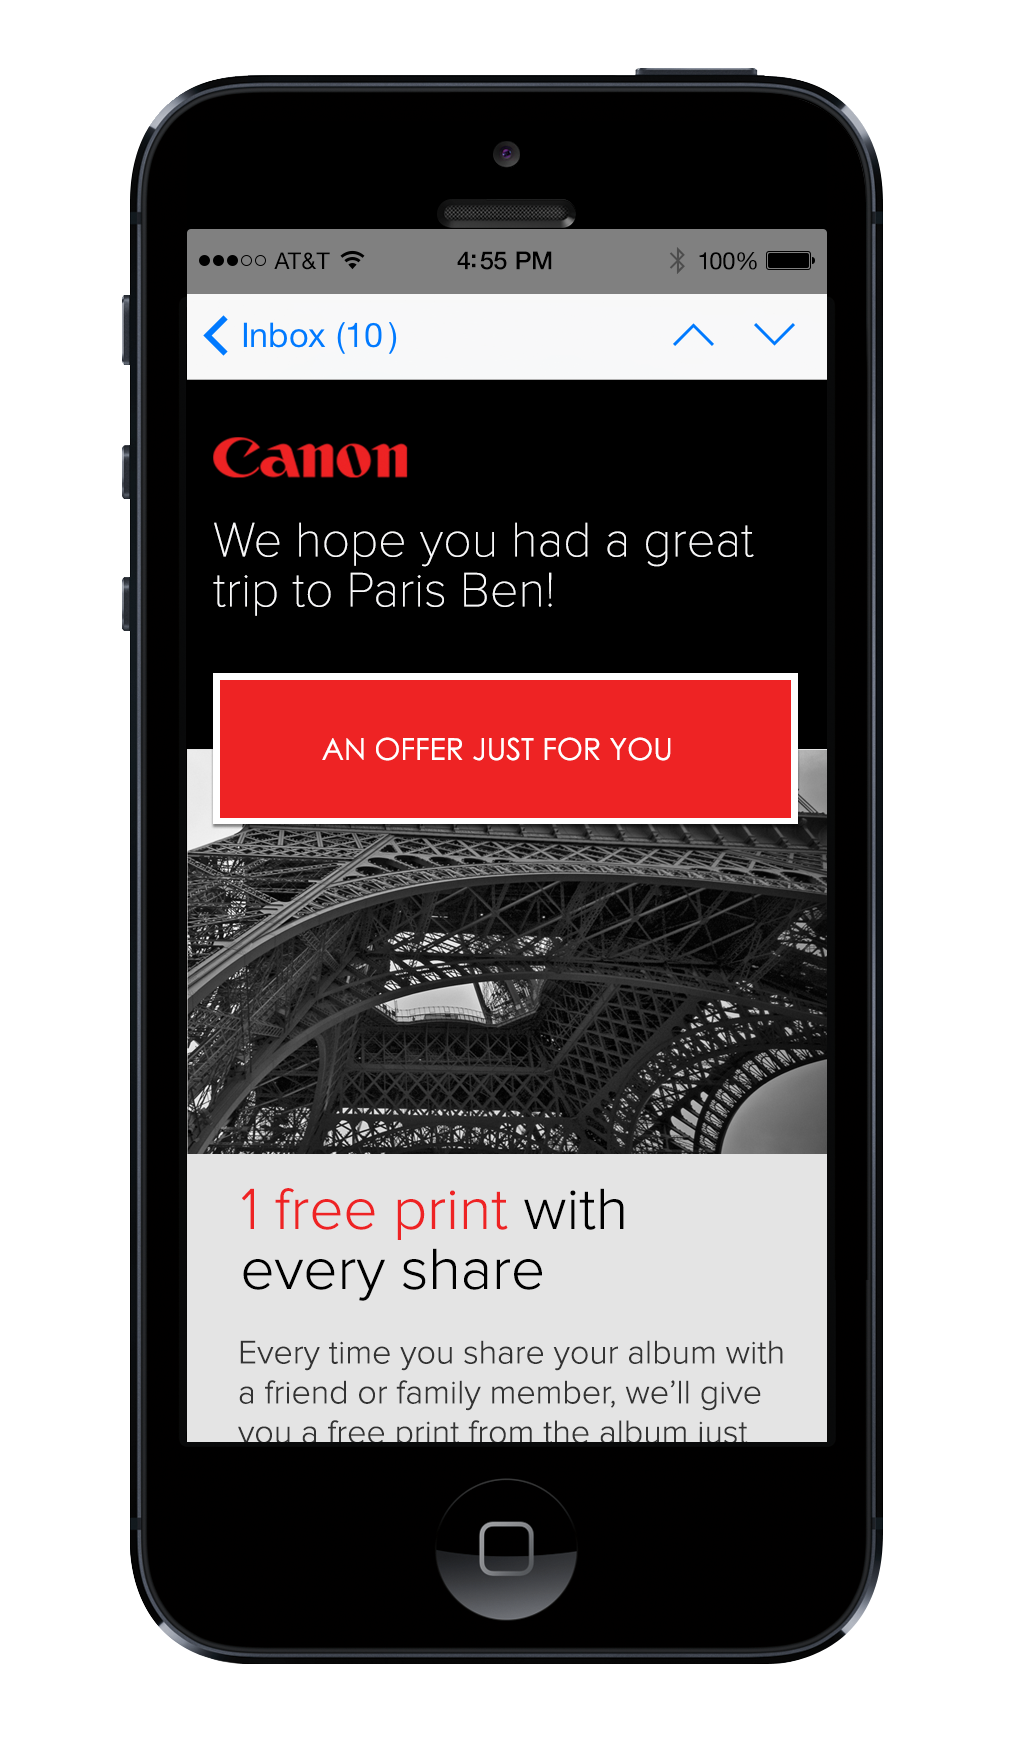 Personalized Offers: Extending the Canon relationship beyond the camera